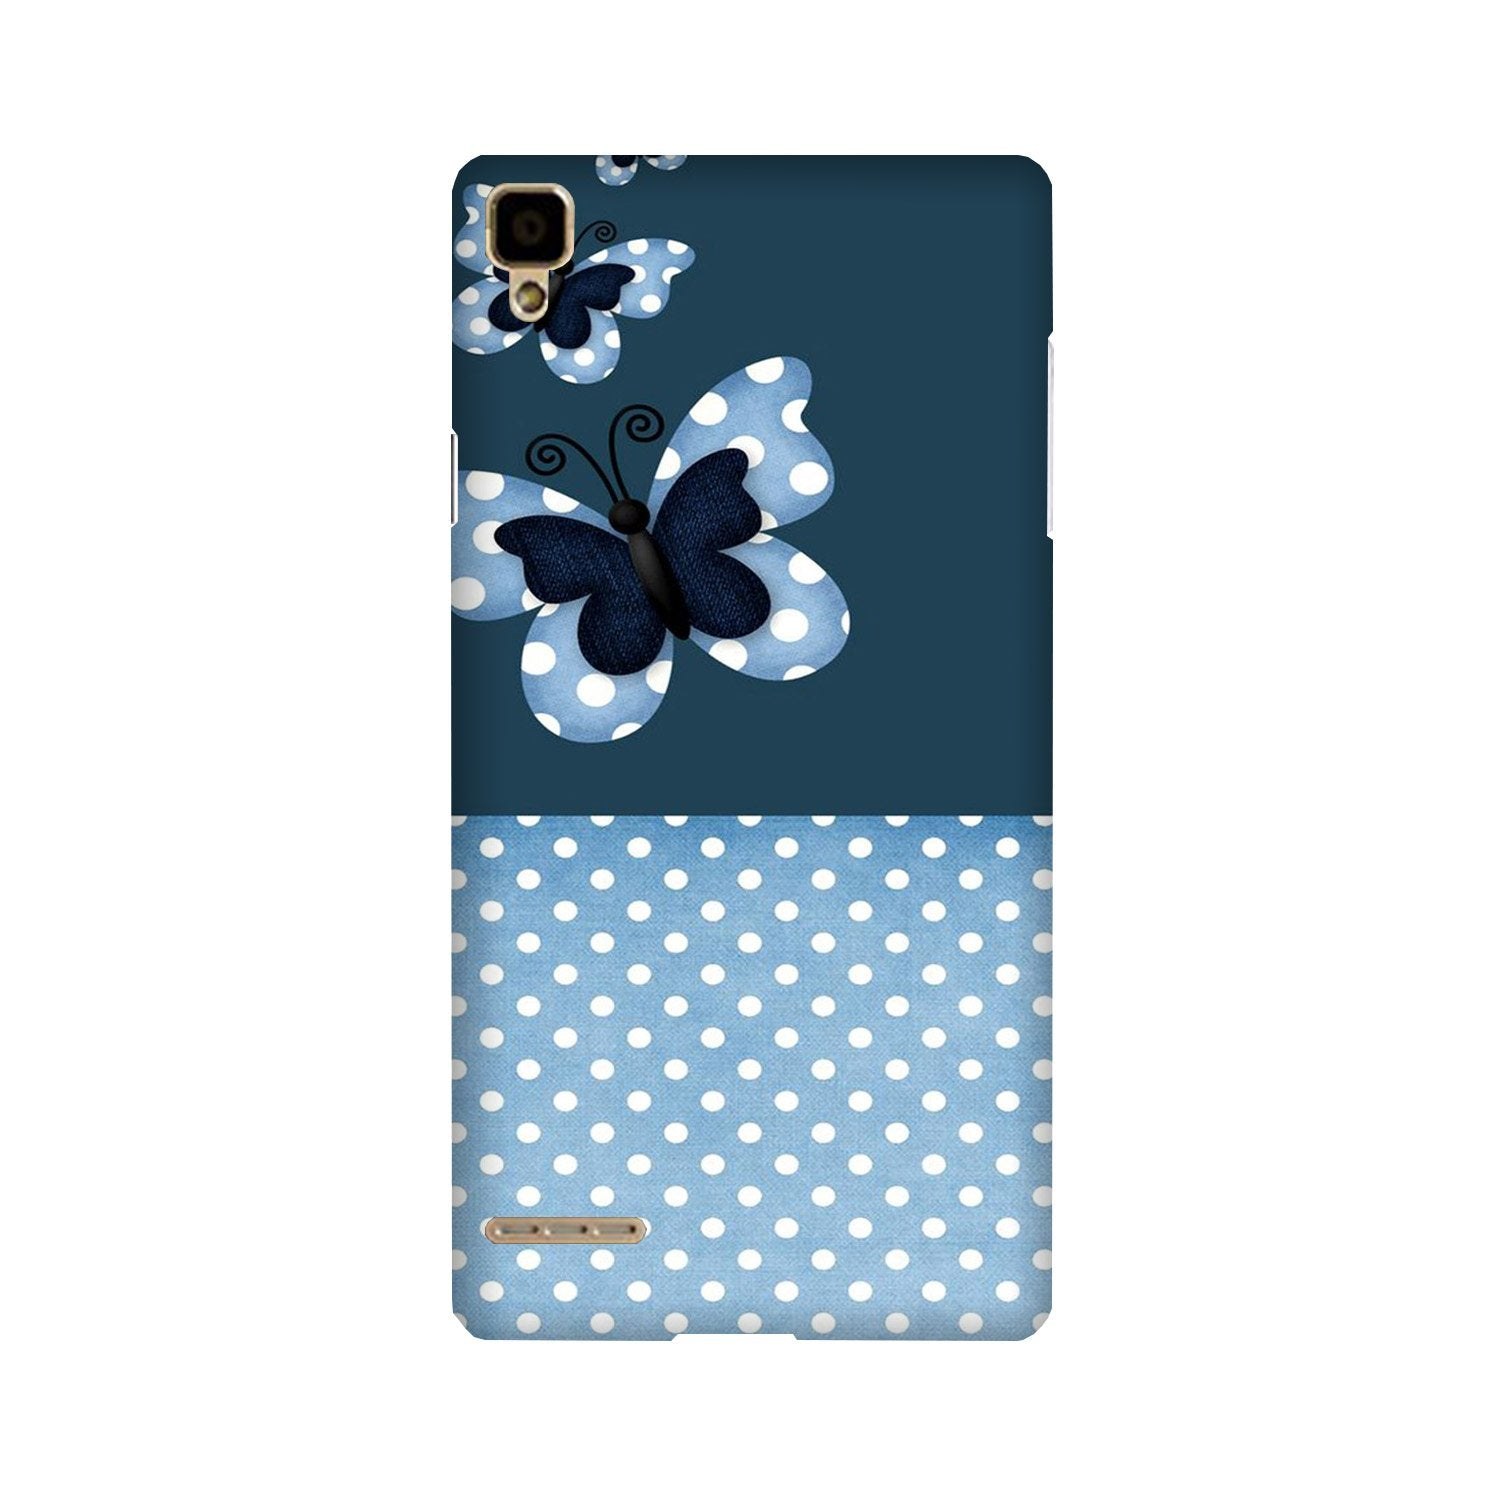 White dots Butterfly Case for Oppo F1